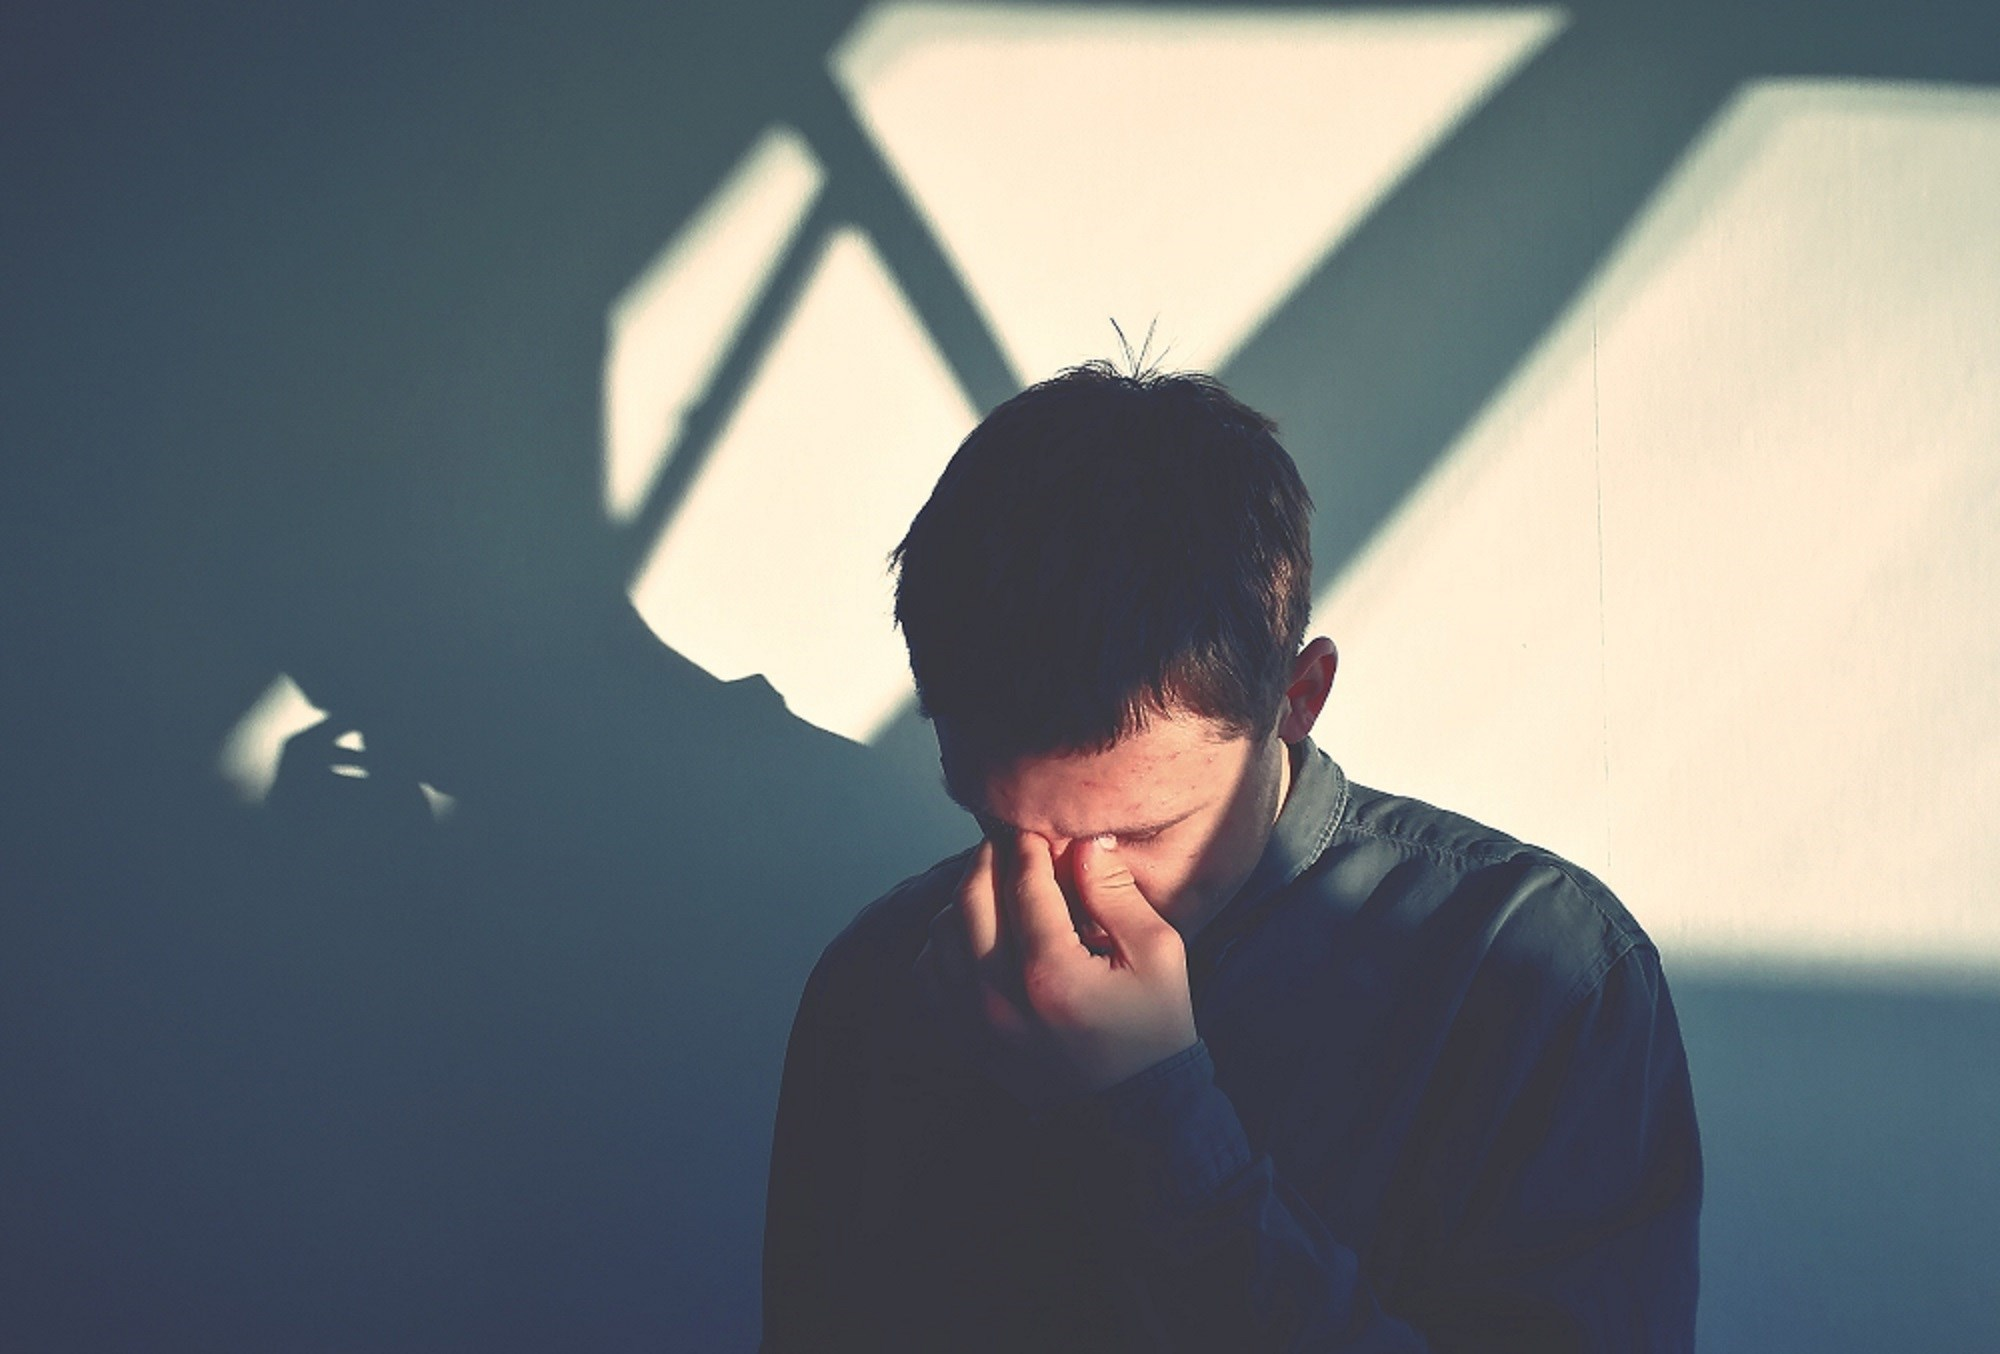 Predictors of Suicide Risk in Bipolar Disorder Vary by Sex